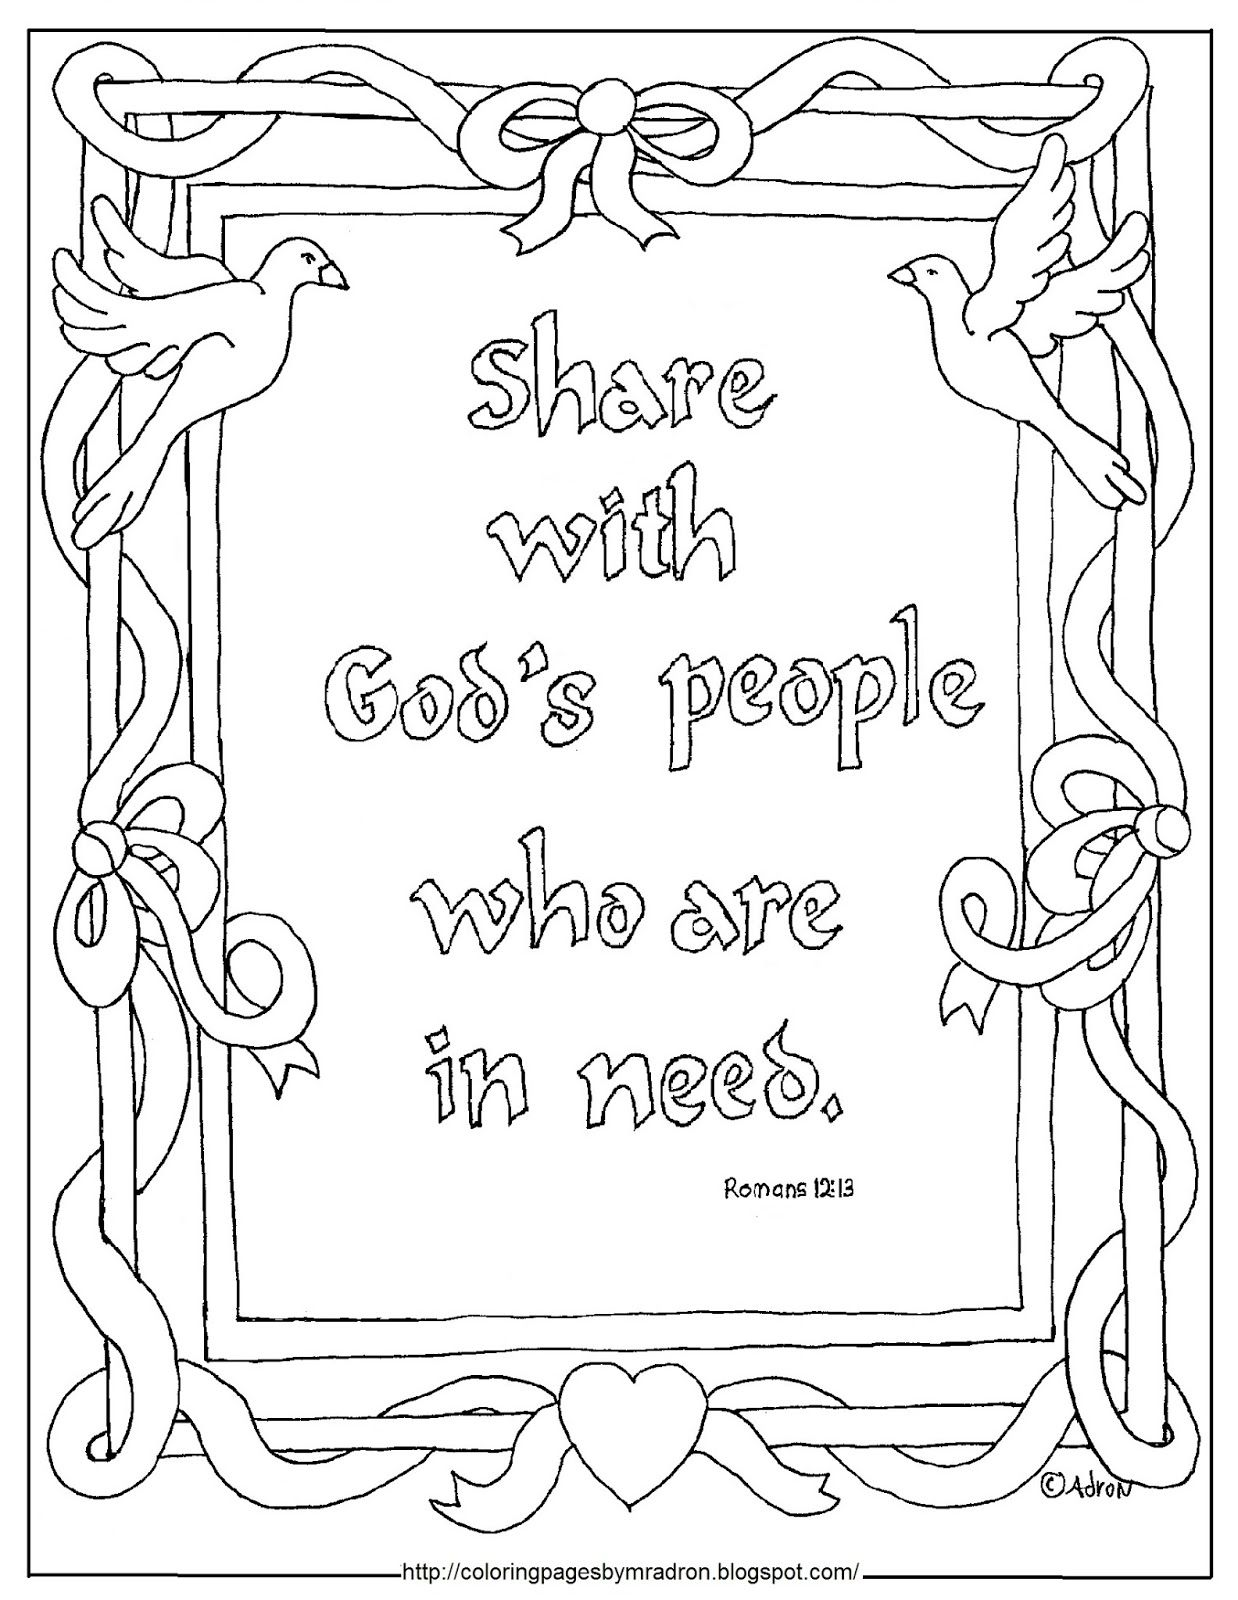 b is for bible coloring page scan20160308jpg 12381600 pixels bible verse page bible b for is coloring